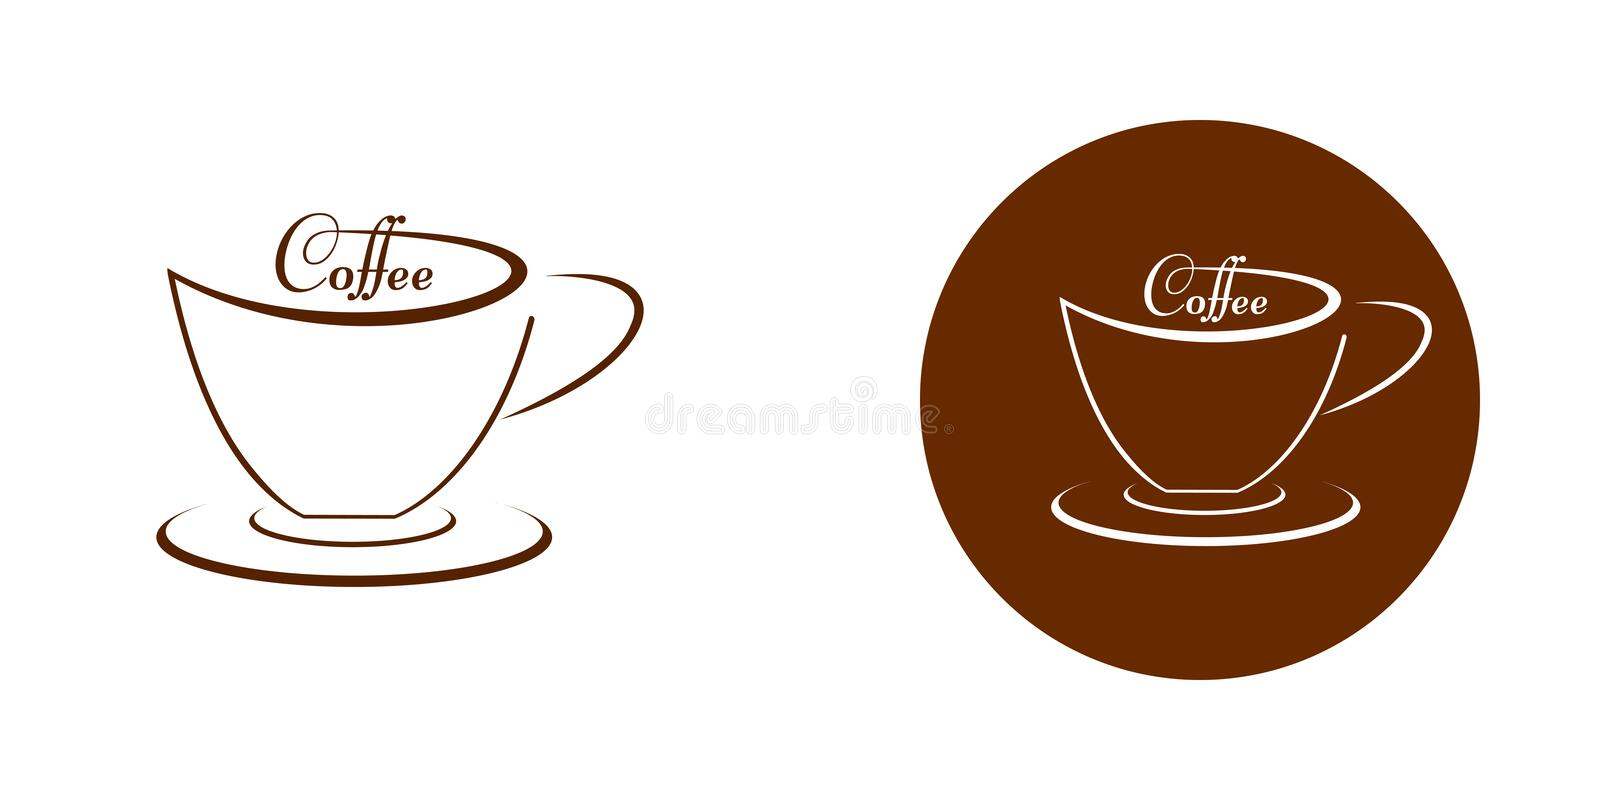 A cup of coffee - a sign on a white and brown background vector illustration